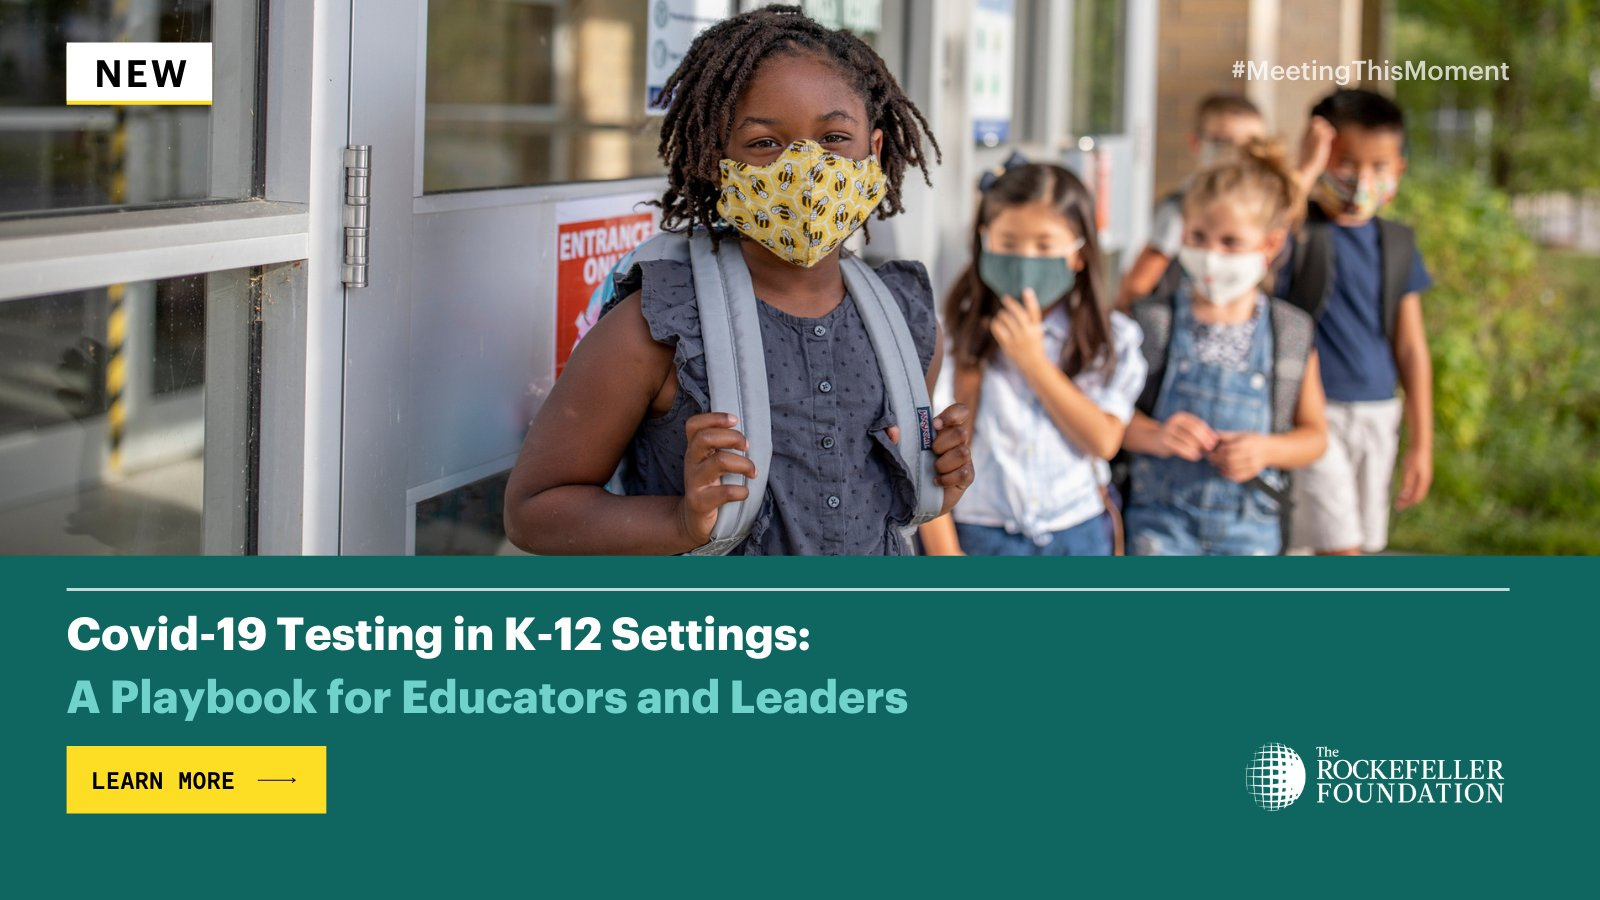 "The Rockefeller Foundation on Twitter: ""Our K-12 Testing Playbook is  informed by experiences from 90+ school district & public health leaders.  This guidance can help practitioners on the ground address everyday  realities"